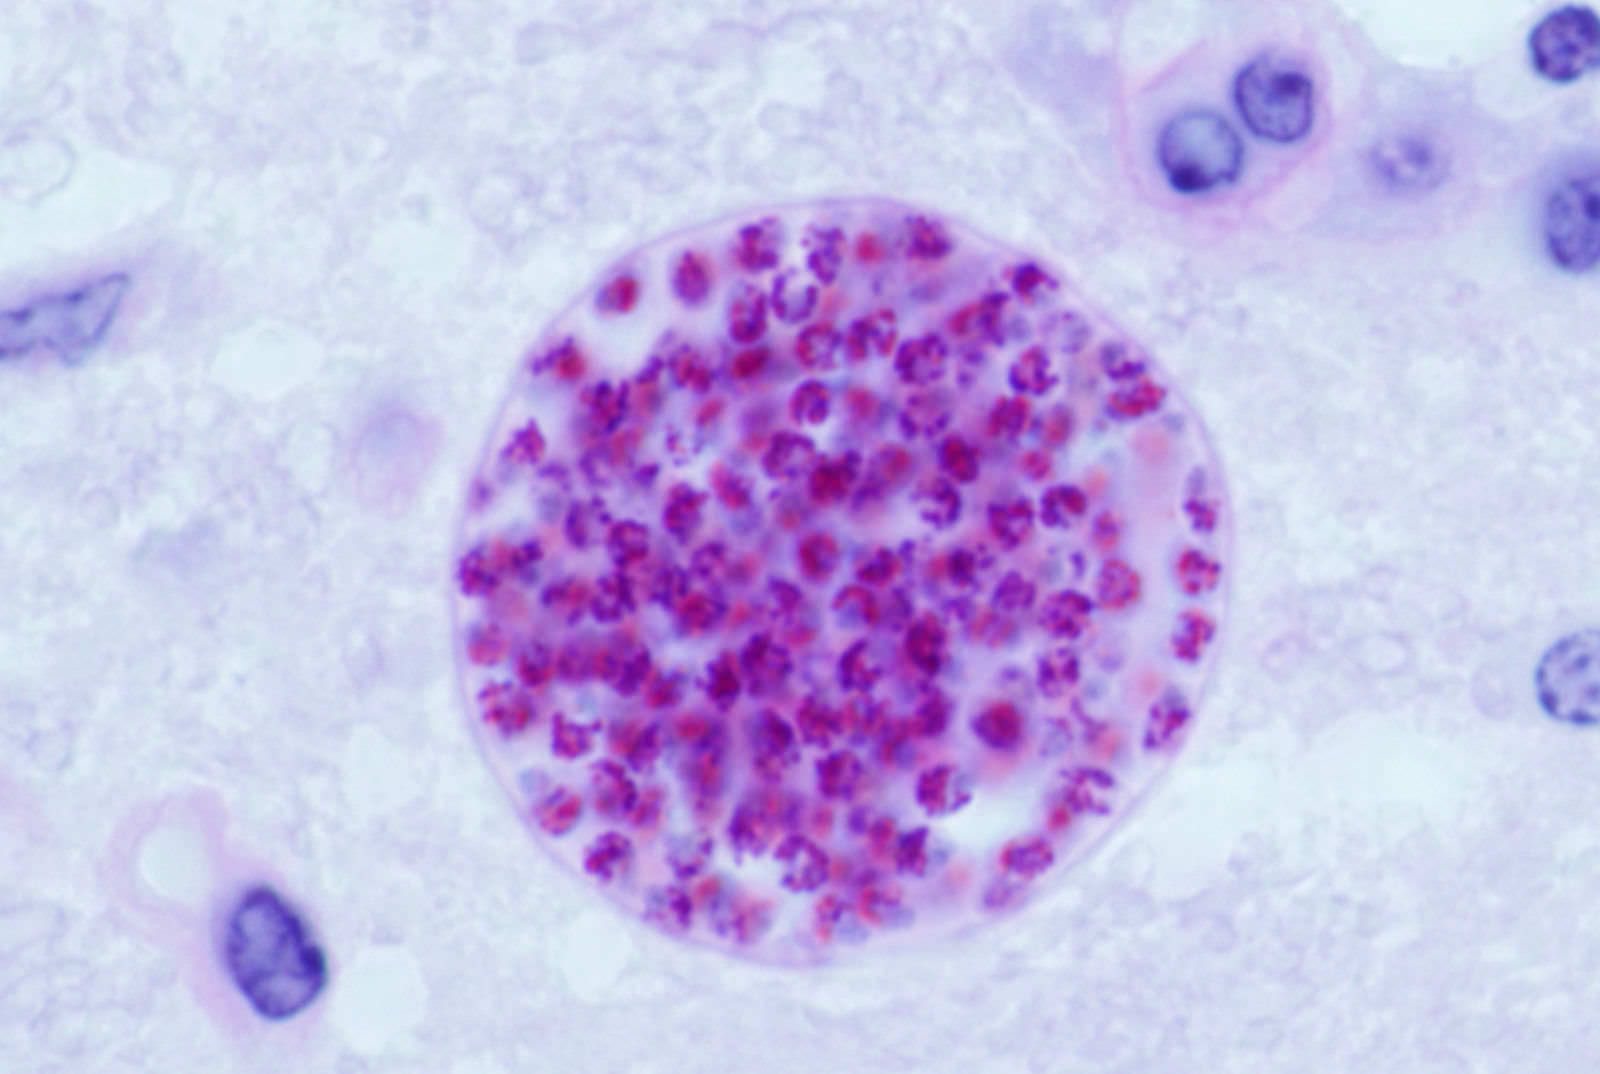 What's really the deal with toxoplasma gondii and human behavior? — Neuroscientifically Challenged